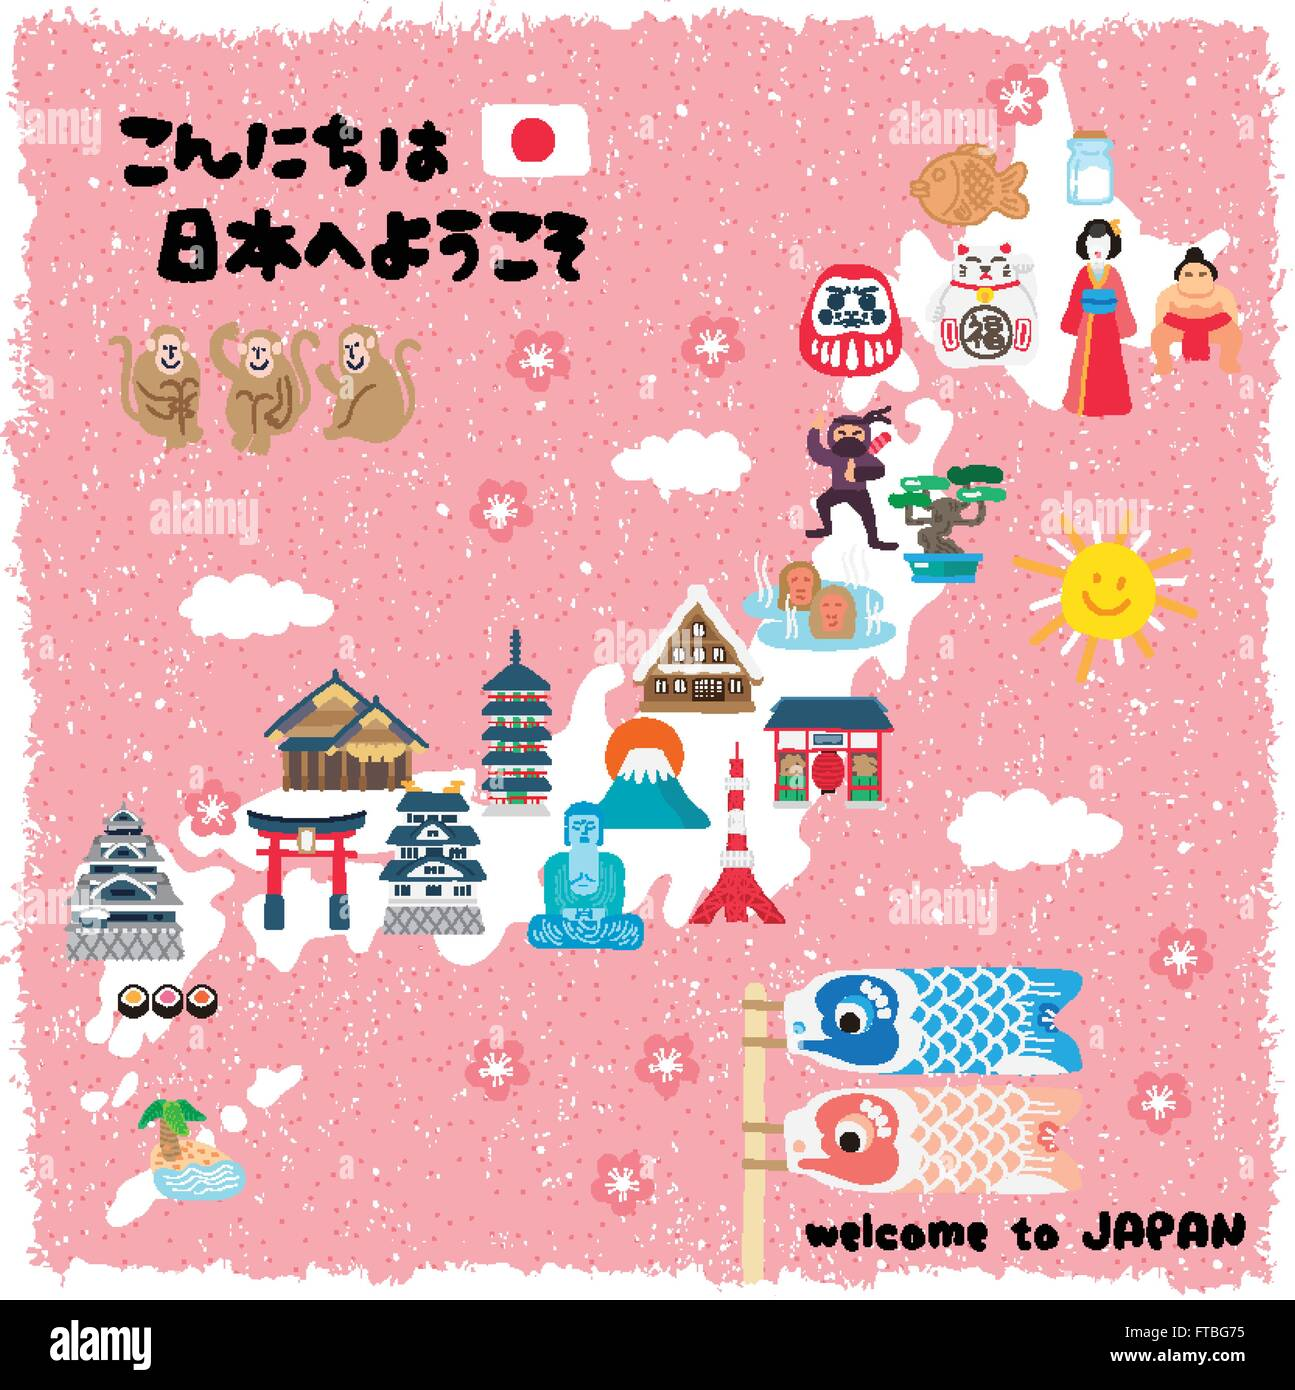 Lovely Japan Travel Map Hello And Welcome To Japan In Japanese - Japan map vector art